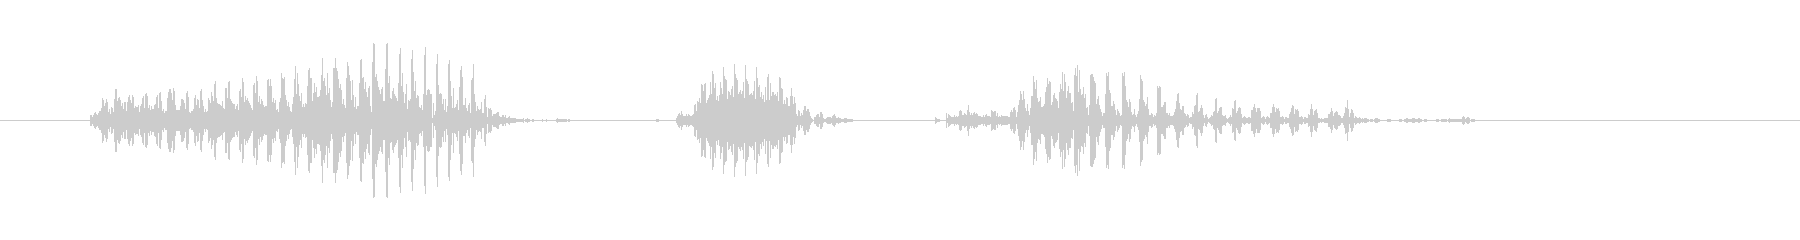 Iwate Prefecture's unreproduced waveform